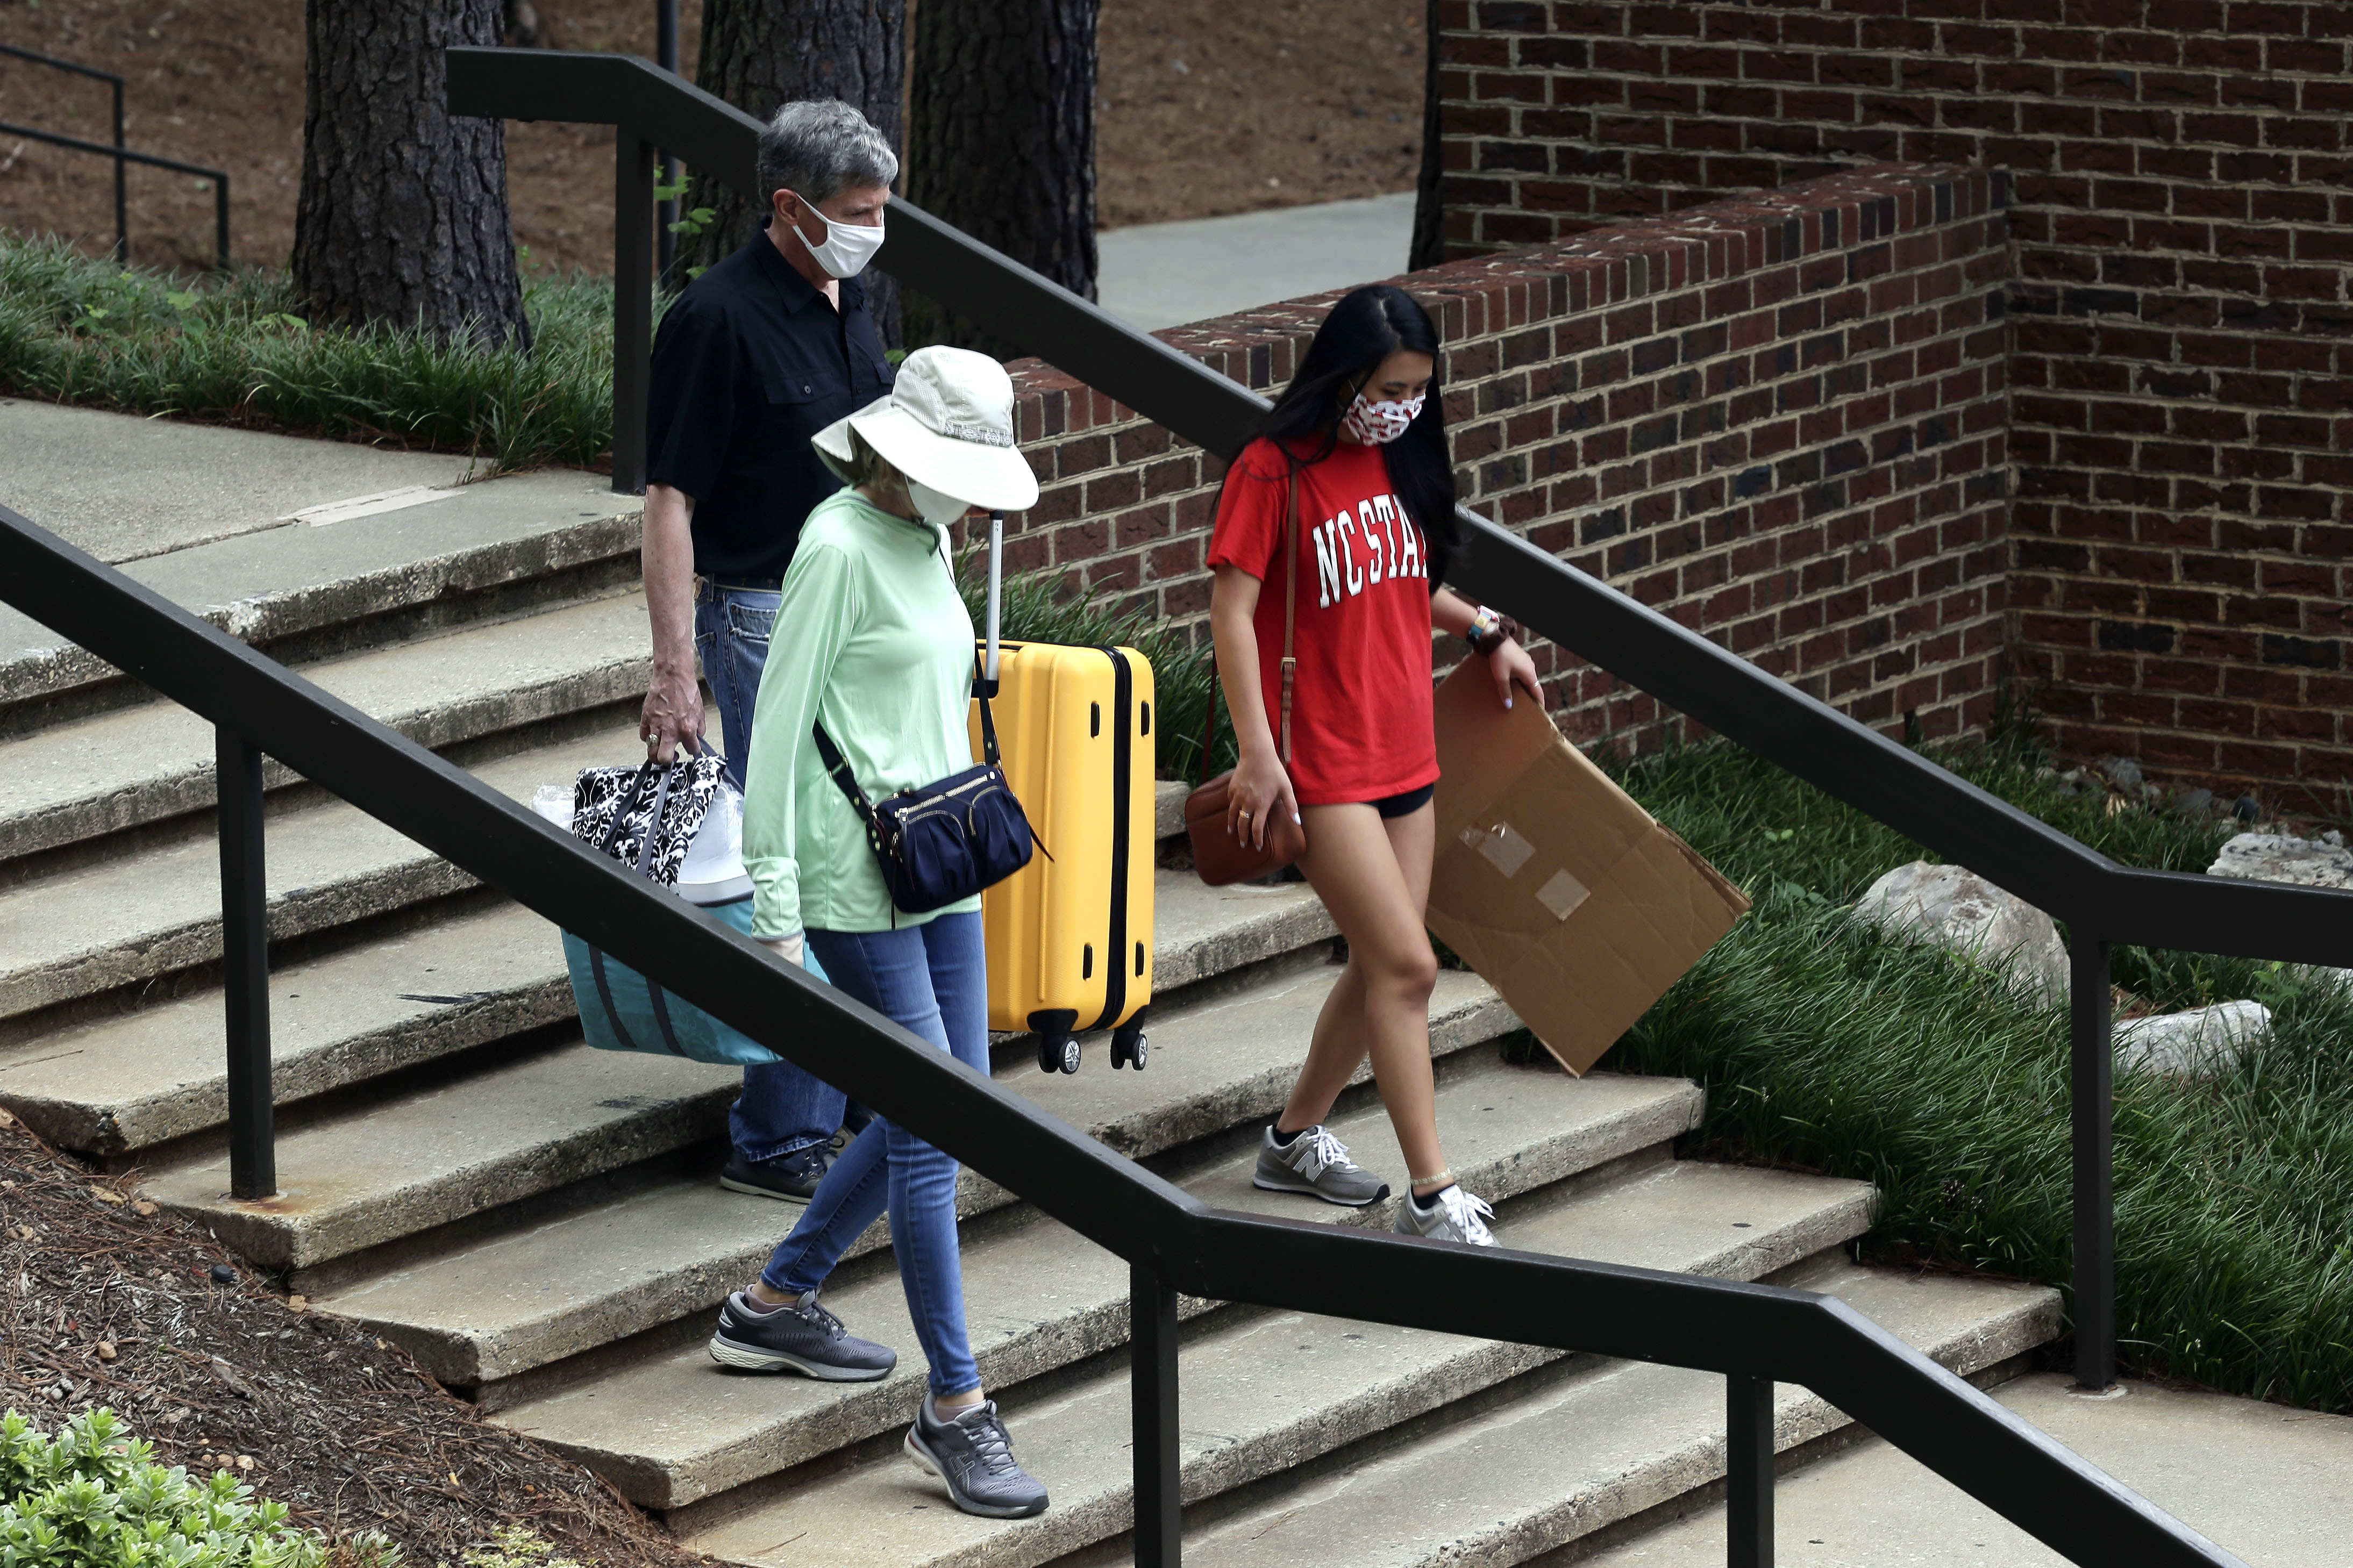 Charles Jacocks, rear, along with his wife Carrie and incoming freshman Ann Grace, right, carry their belongings as college students begin moving in for the fall semester at N.C. State University in Raleigh, N.C., Friday, July 31, 2020. The first wave of college students returning to their dorms aren't finding the typical mobs of students and parents. At N.C. State, the return of students was staggered over 10 days and students were greeted Friday by socially distant volunteers donning masks and face shields. (AP Photo/Gerry Broome)